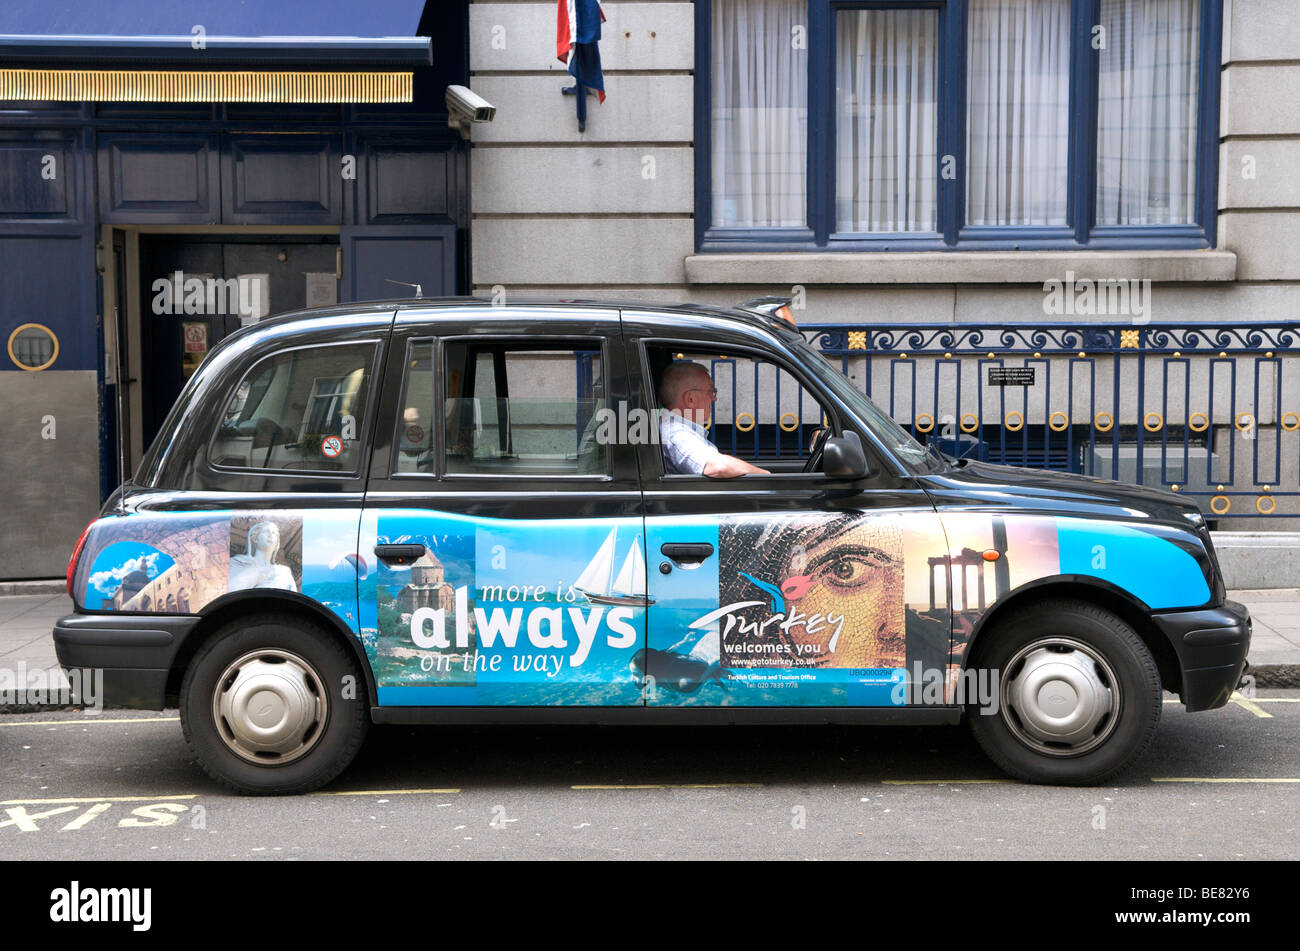 United Kingdom, Londen, August 15, 2008 London black cab in front of the Ritz Hotel. - Stock Image